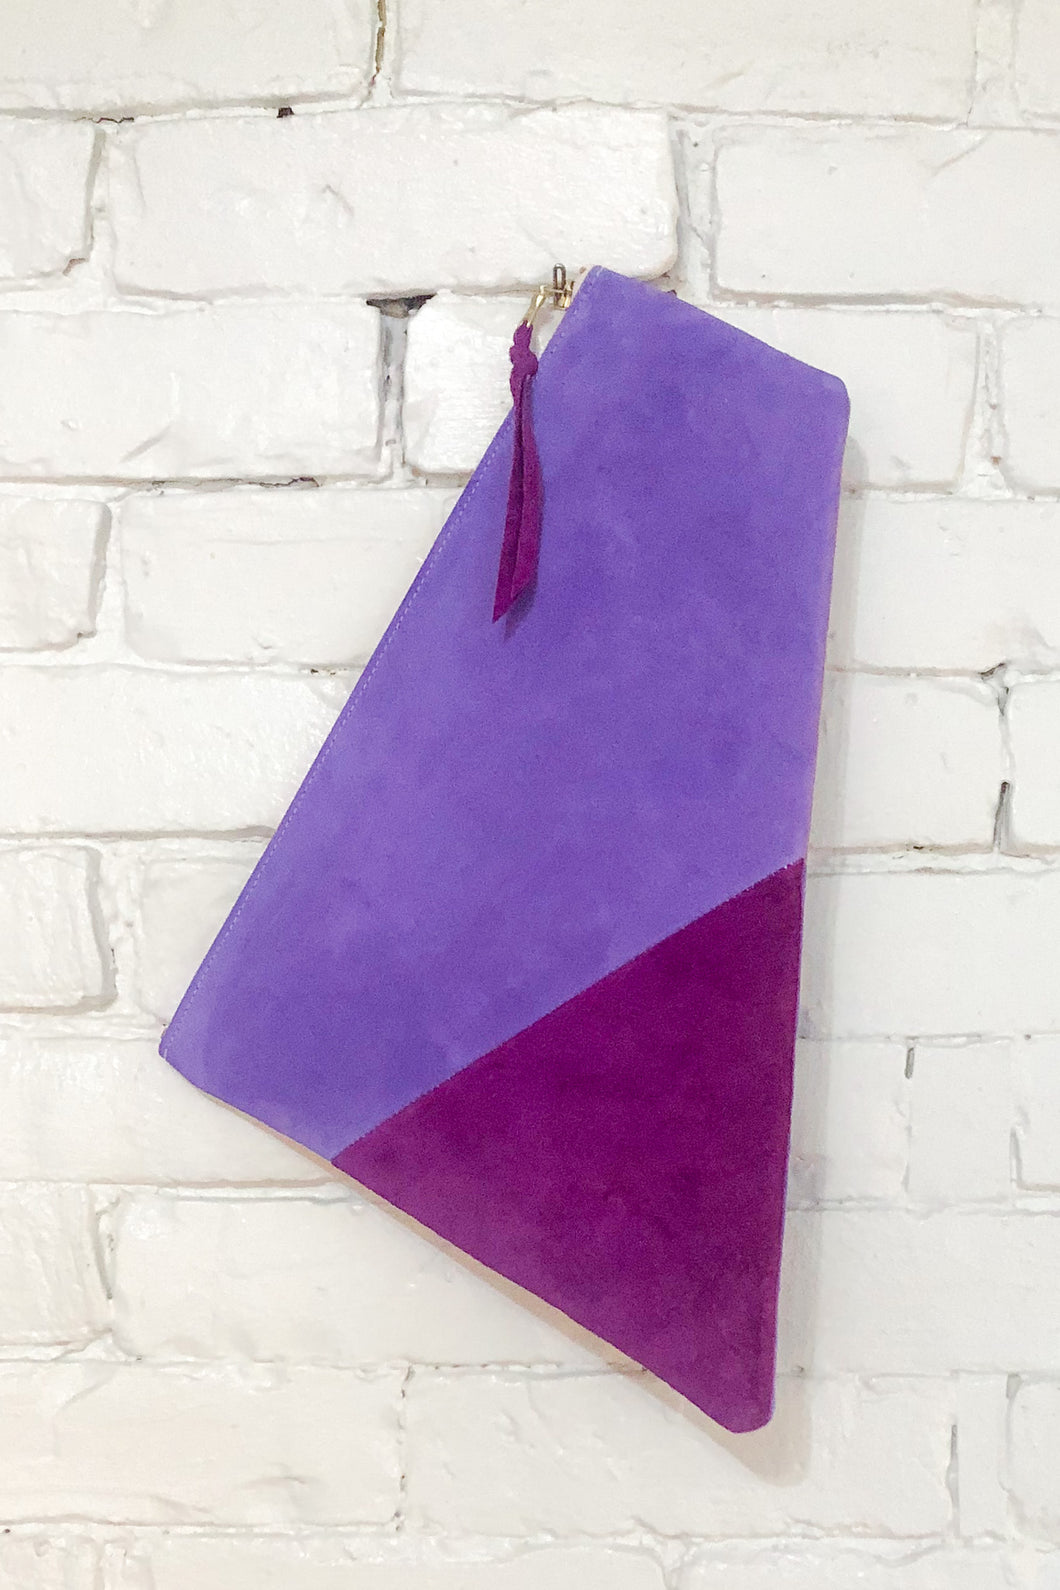 The Trapezoid (Violet, Mist, and Plum)